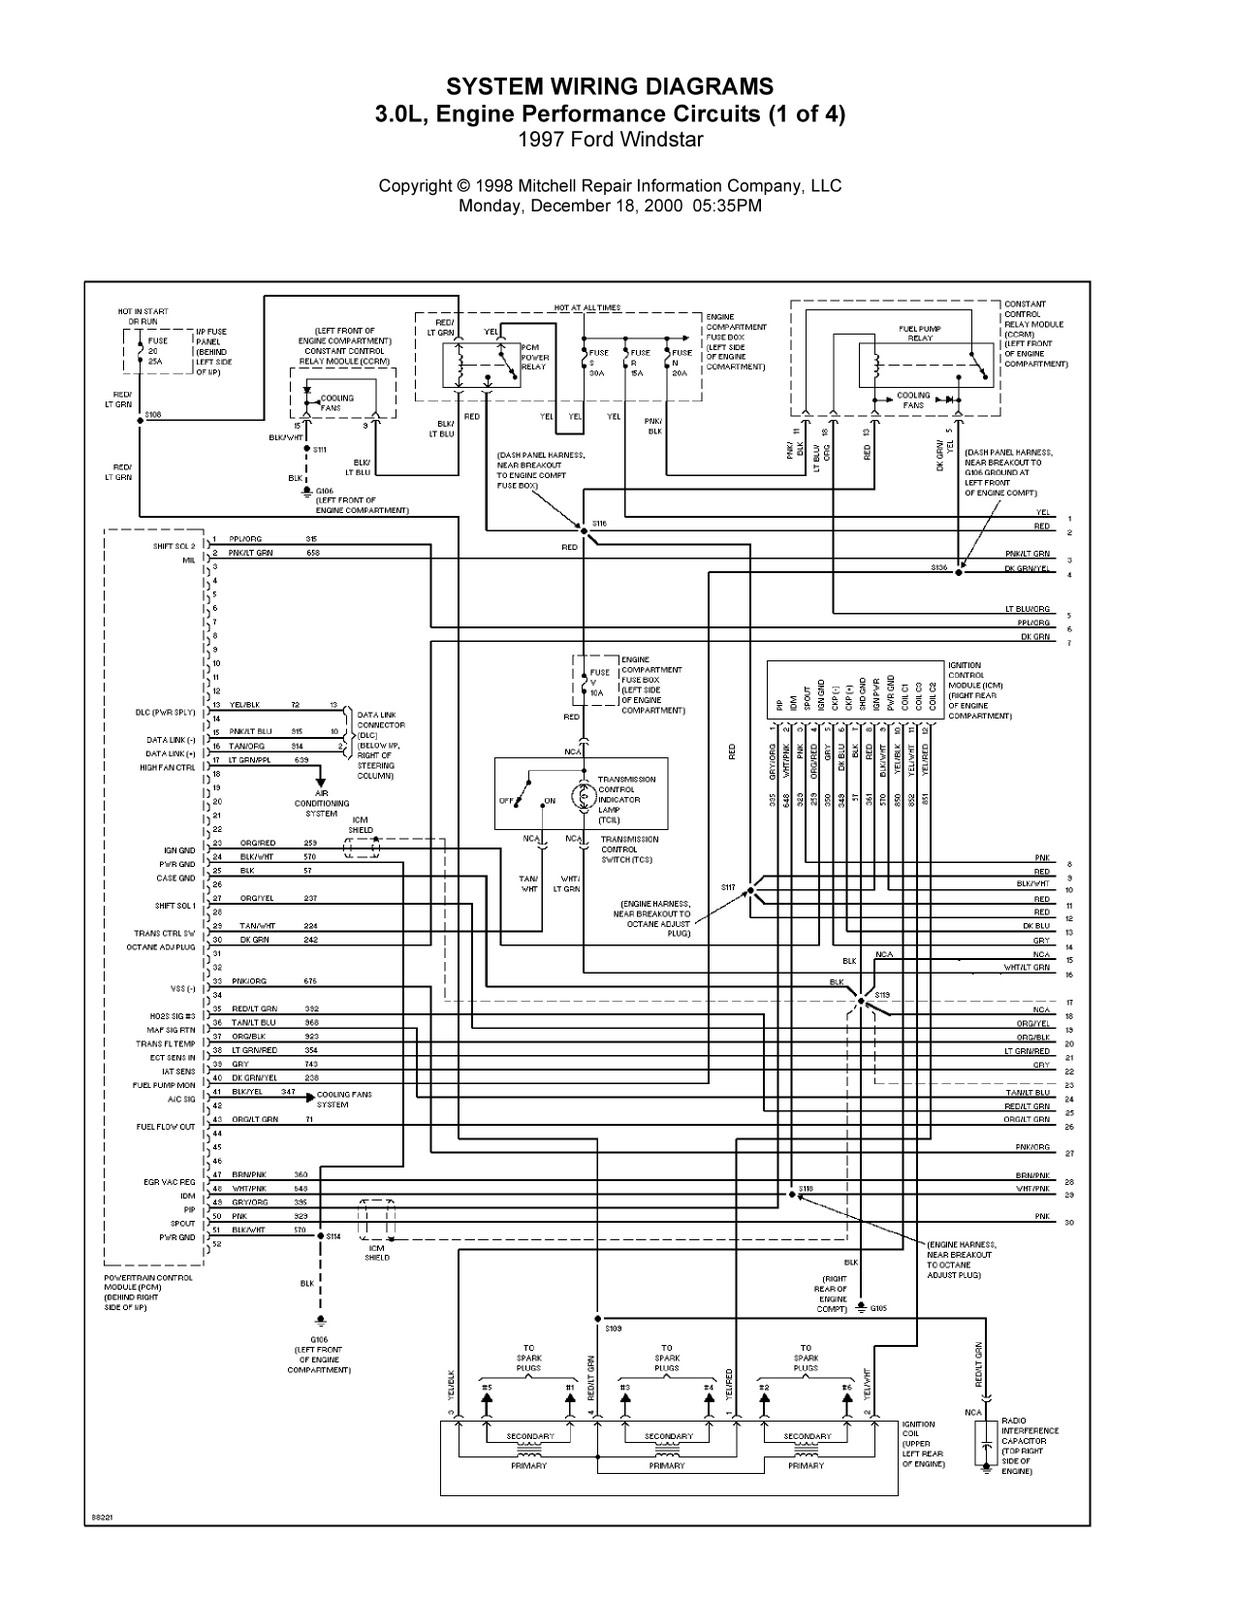 Ford Windstar Electrical Diagram Wiring Schematic 2019 2001 Fuse 1997 Complete System Diagrams 2000 2003